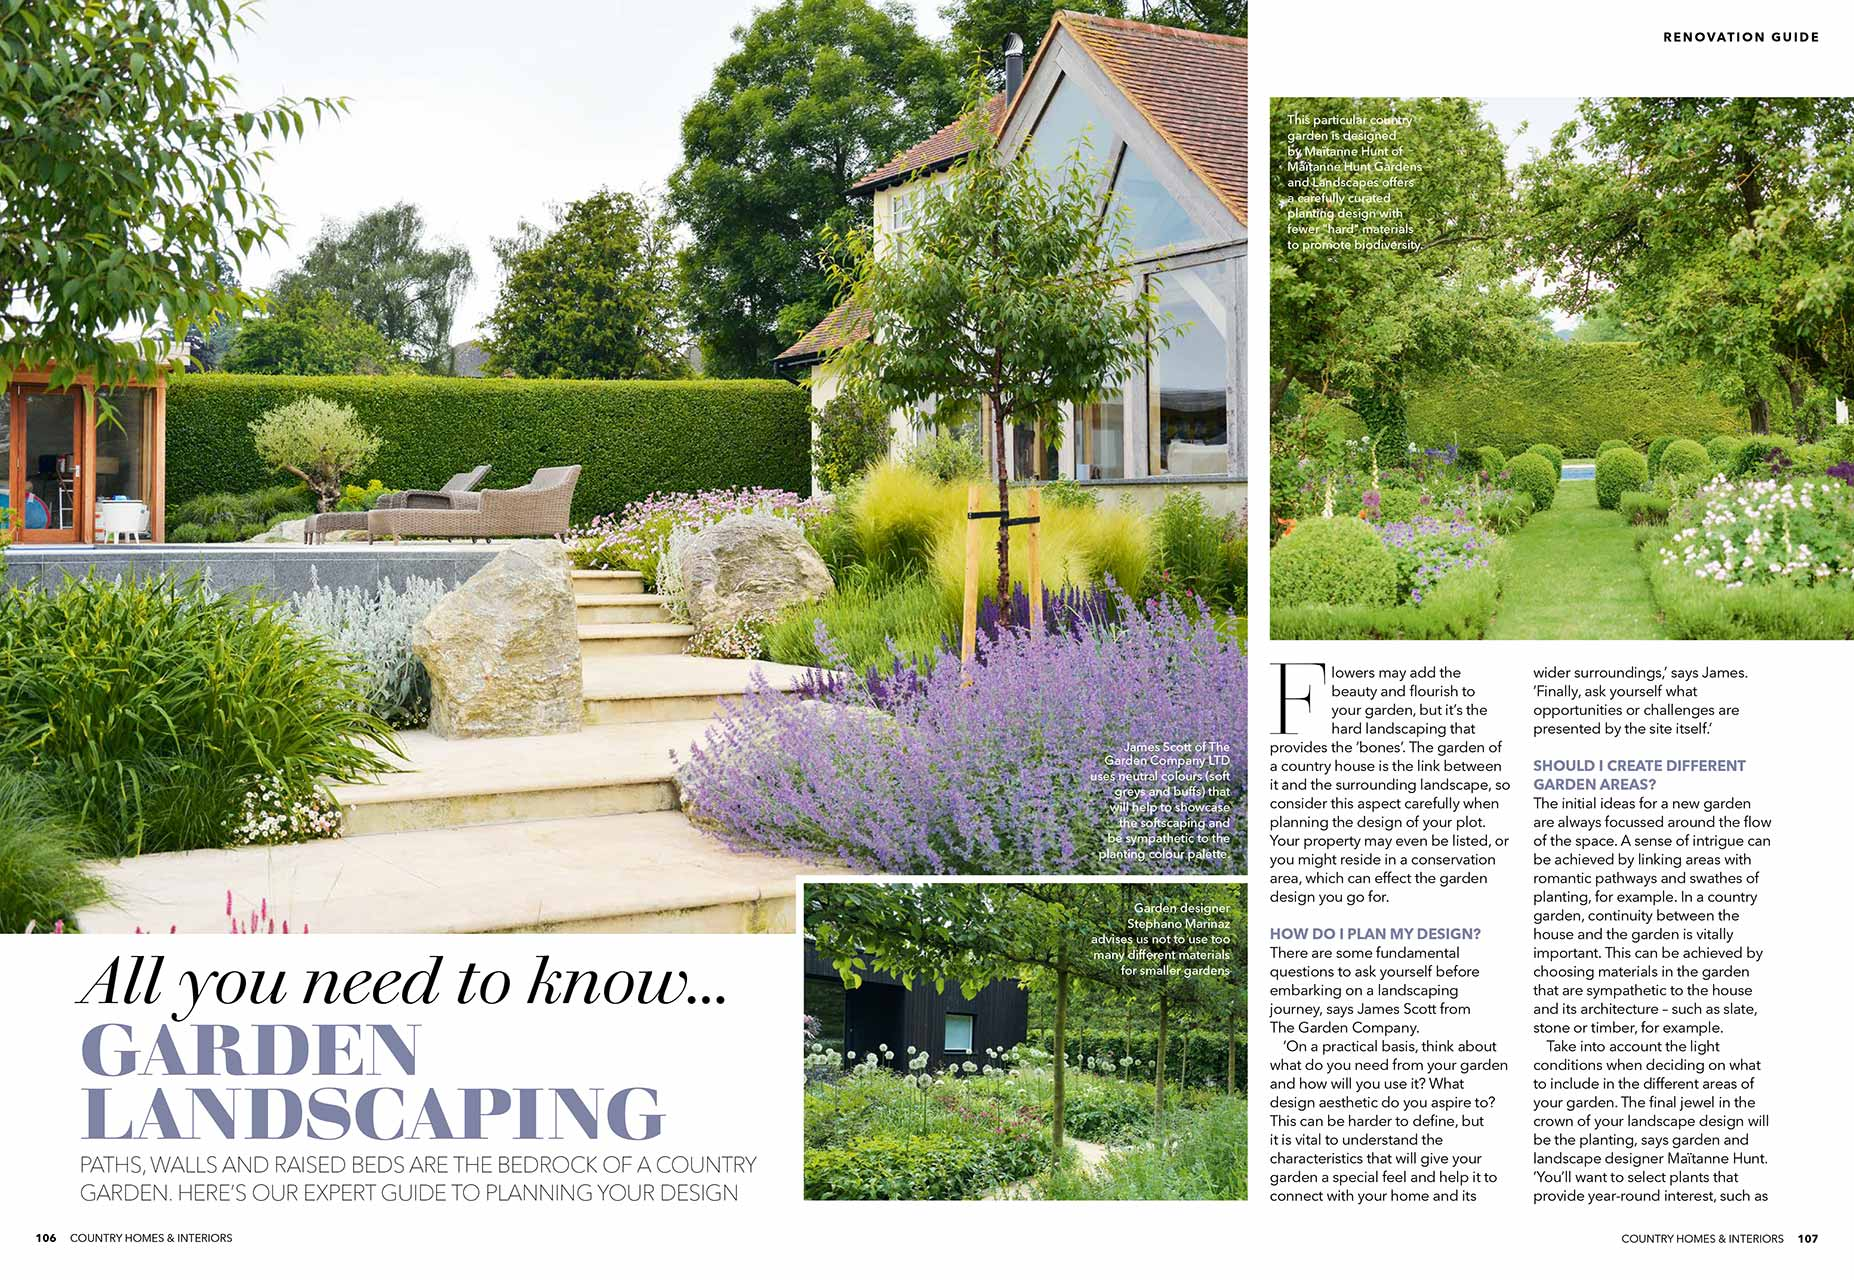 Country Homes & Interiors article featuring Maitanne Hunt